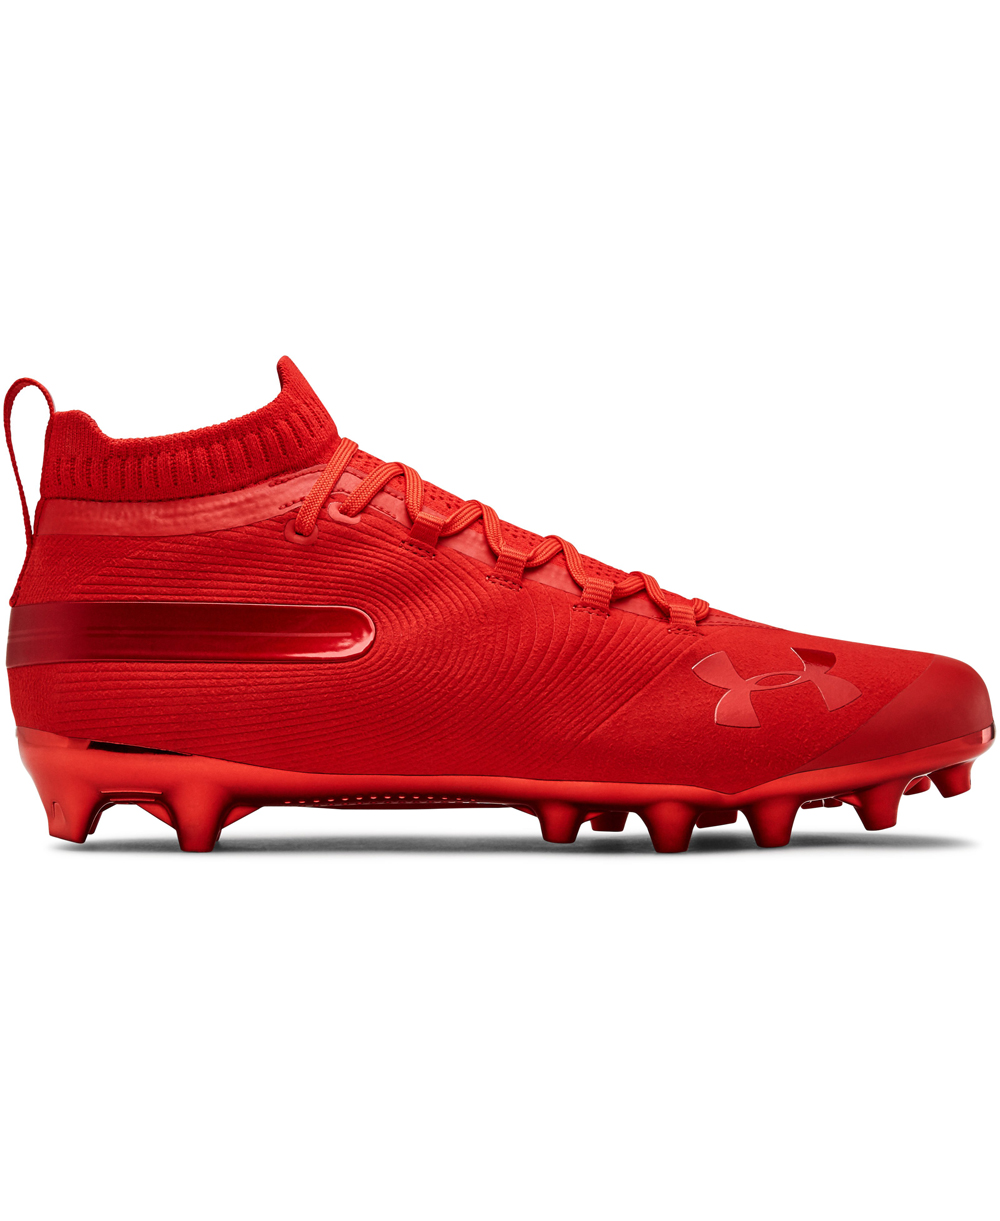 73d9cfef84 Men's Spotlight Suede MC American Football Cleats Red